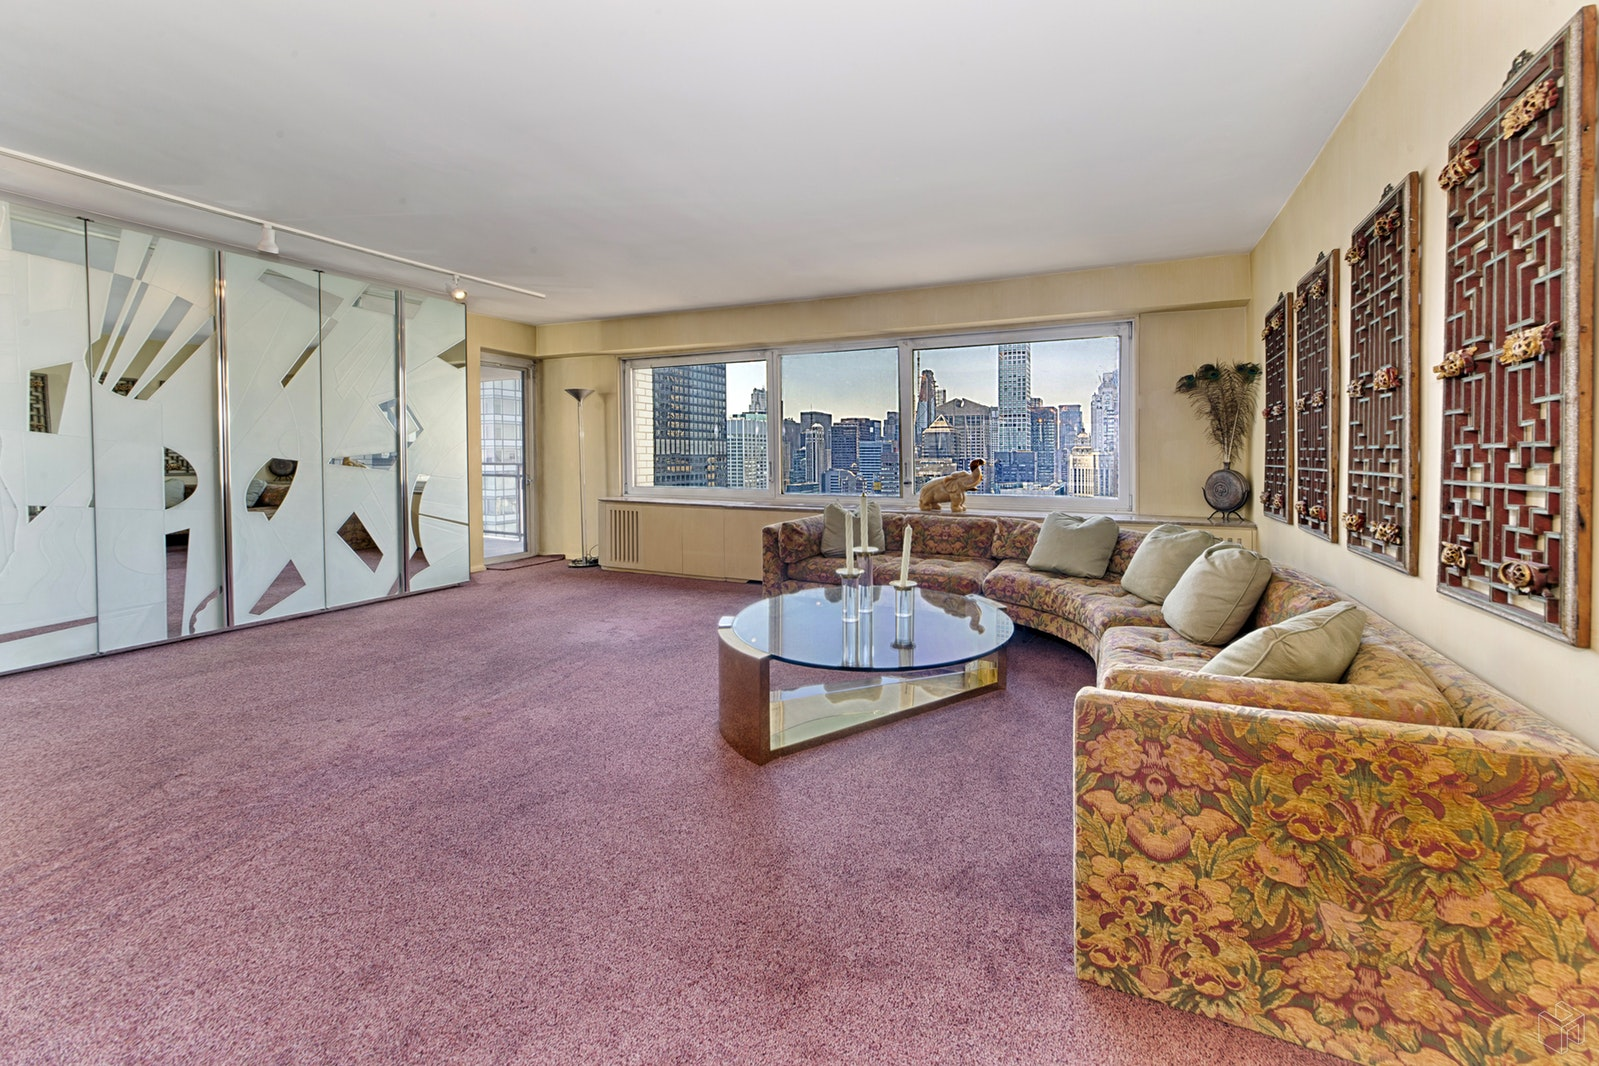 303 East 57th Street 43d, Midtown East, NYC, 10022, $350,000, Sold Property, Halstead Real Estate, Photo 2